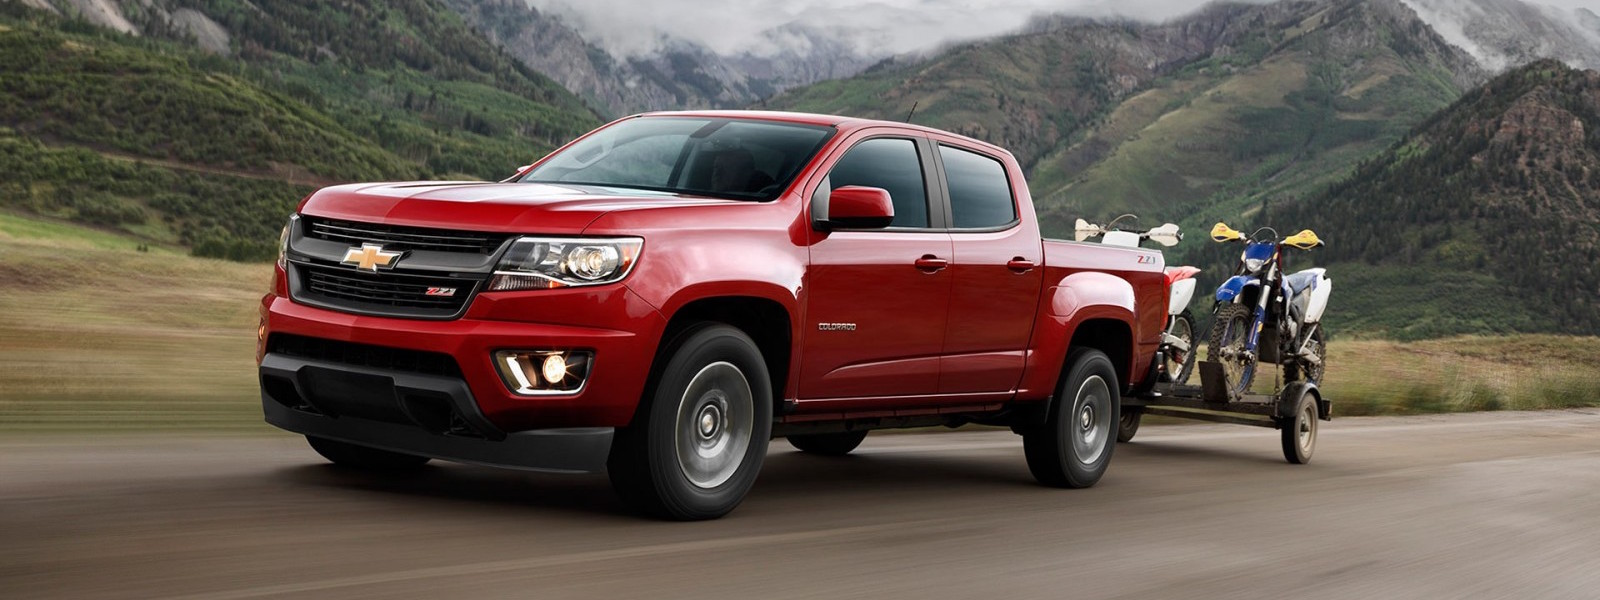 A red 2016 Chevy Colorado is towing dirt bikes on a mountain road.